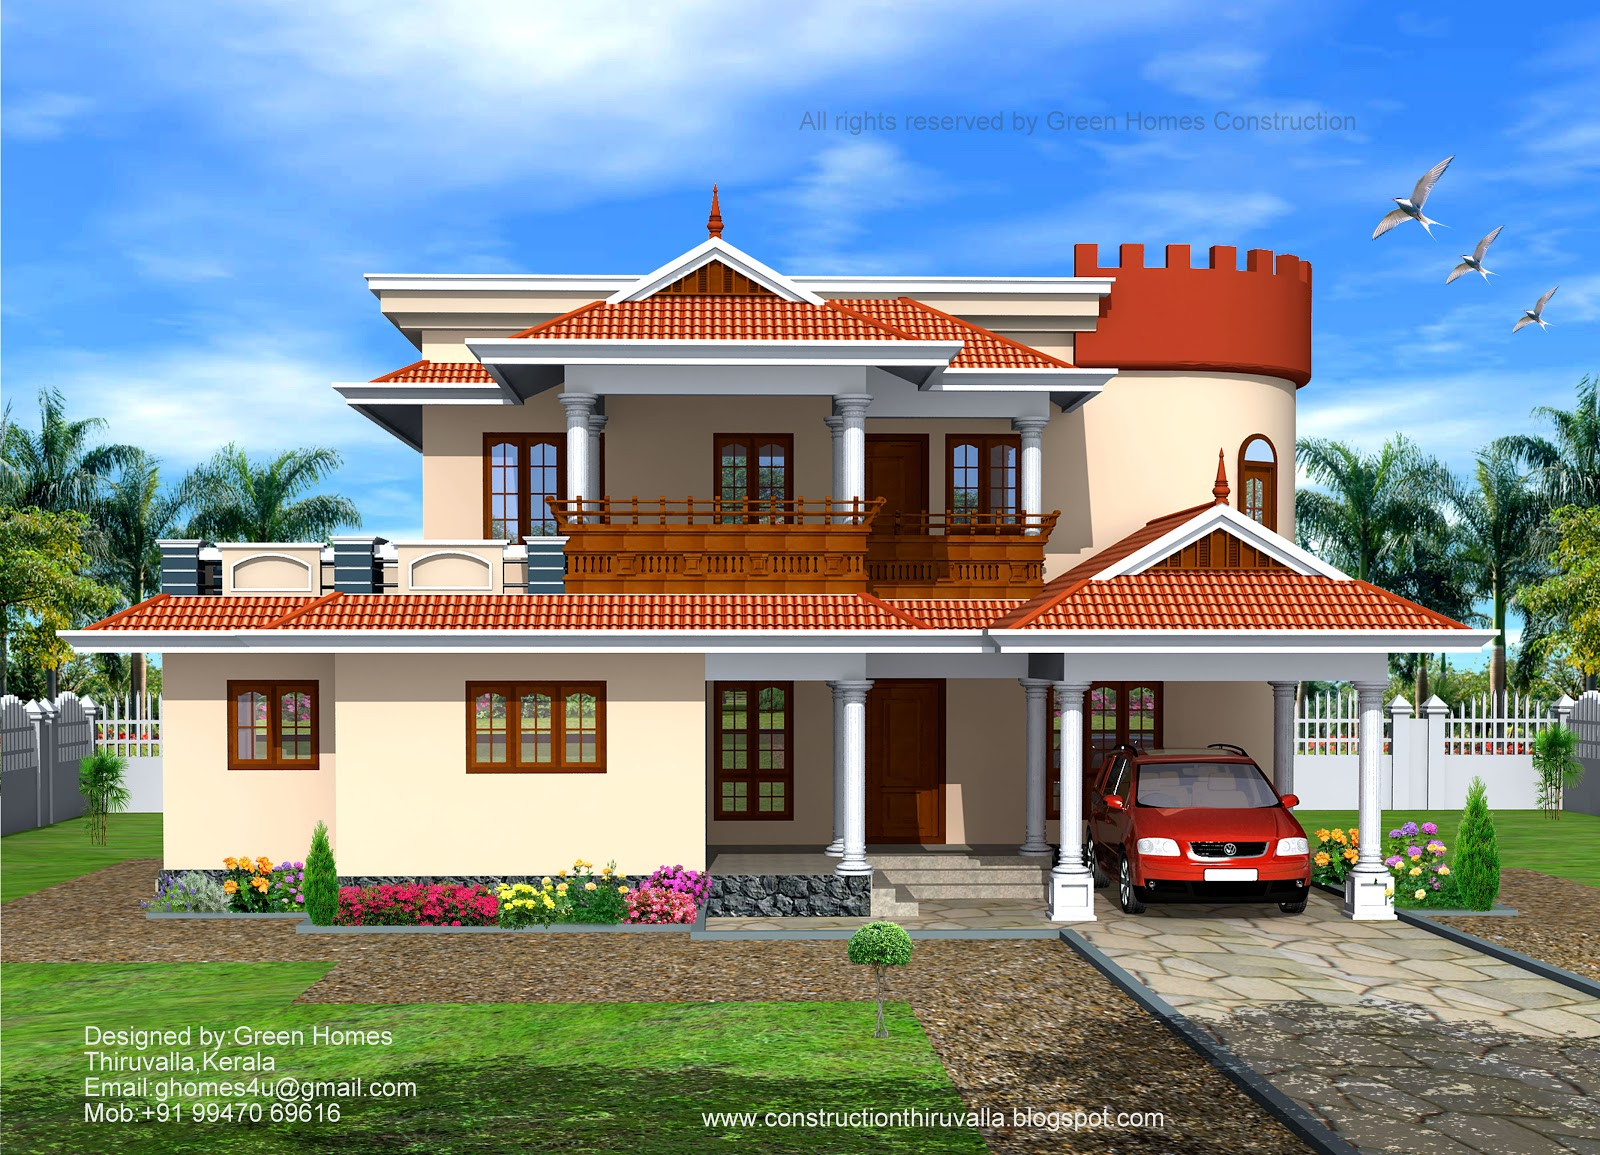 Green homes october 2012 Simple house designs indian style